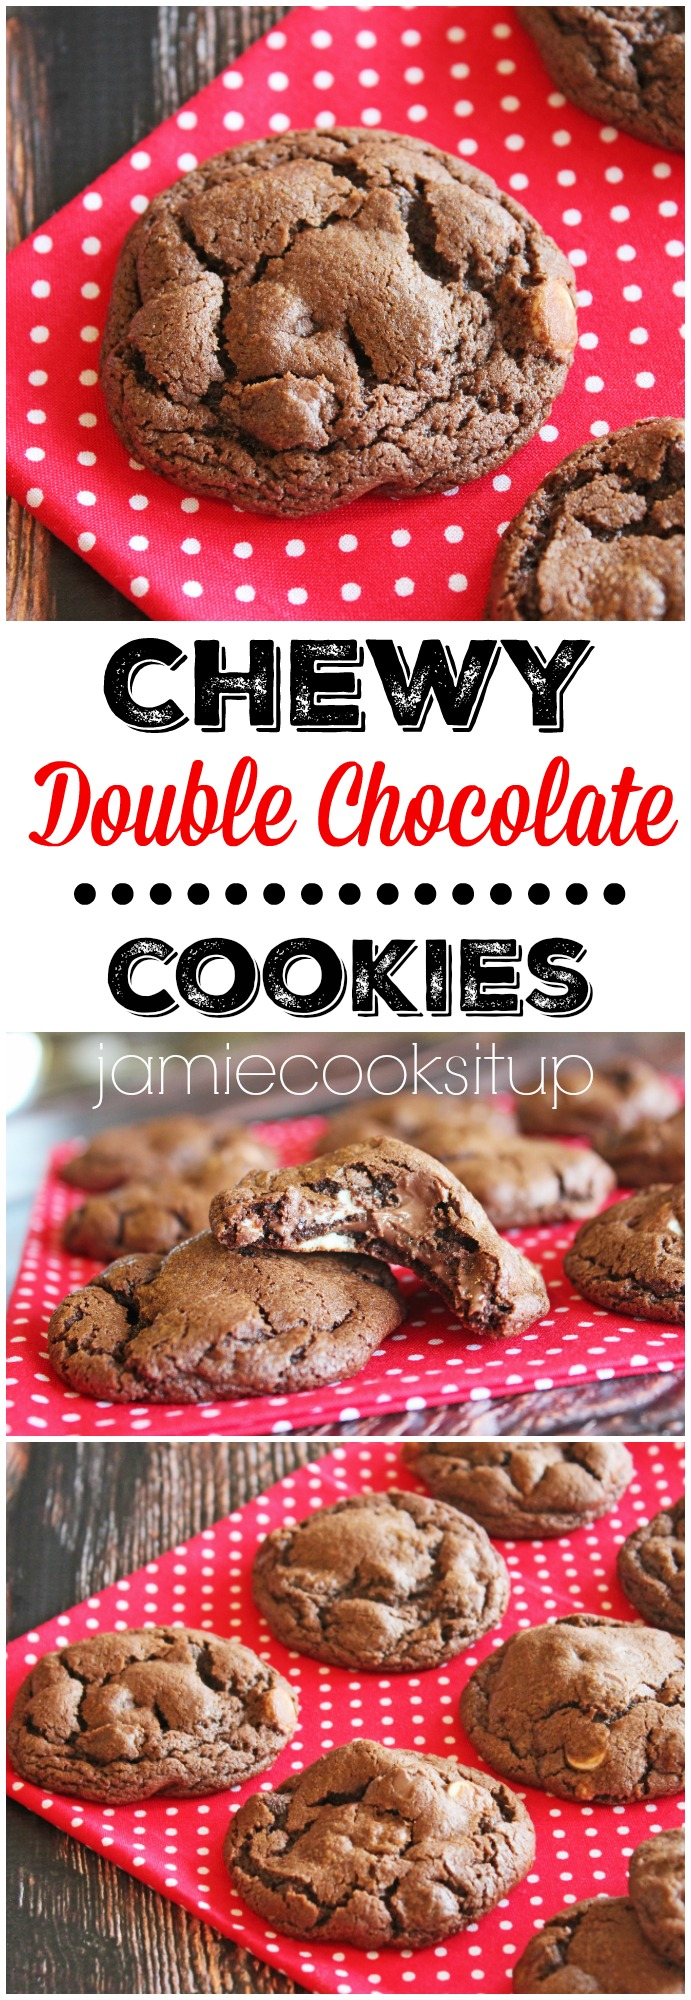 Chewy Double Chocolate Cookies from Jamie Cooks It Up!